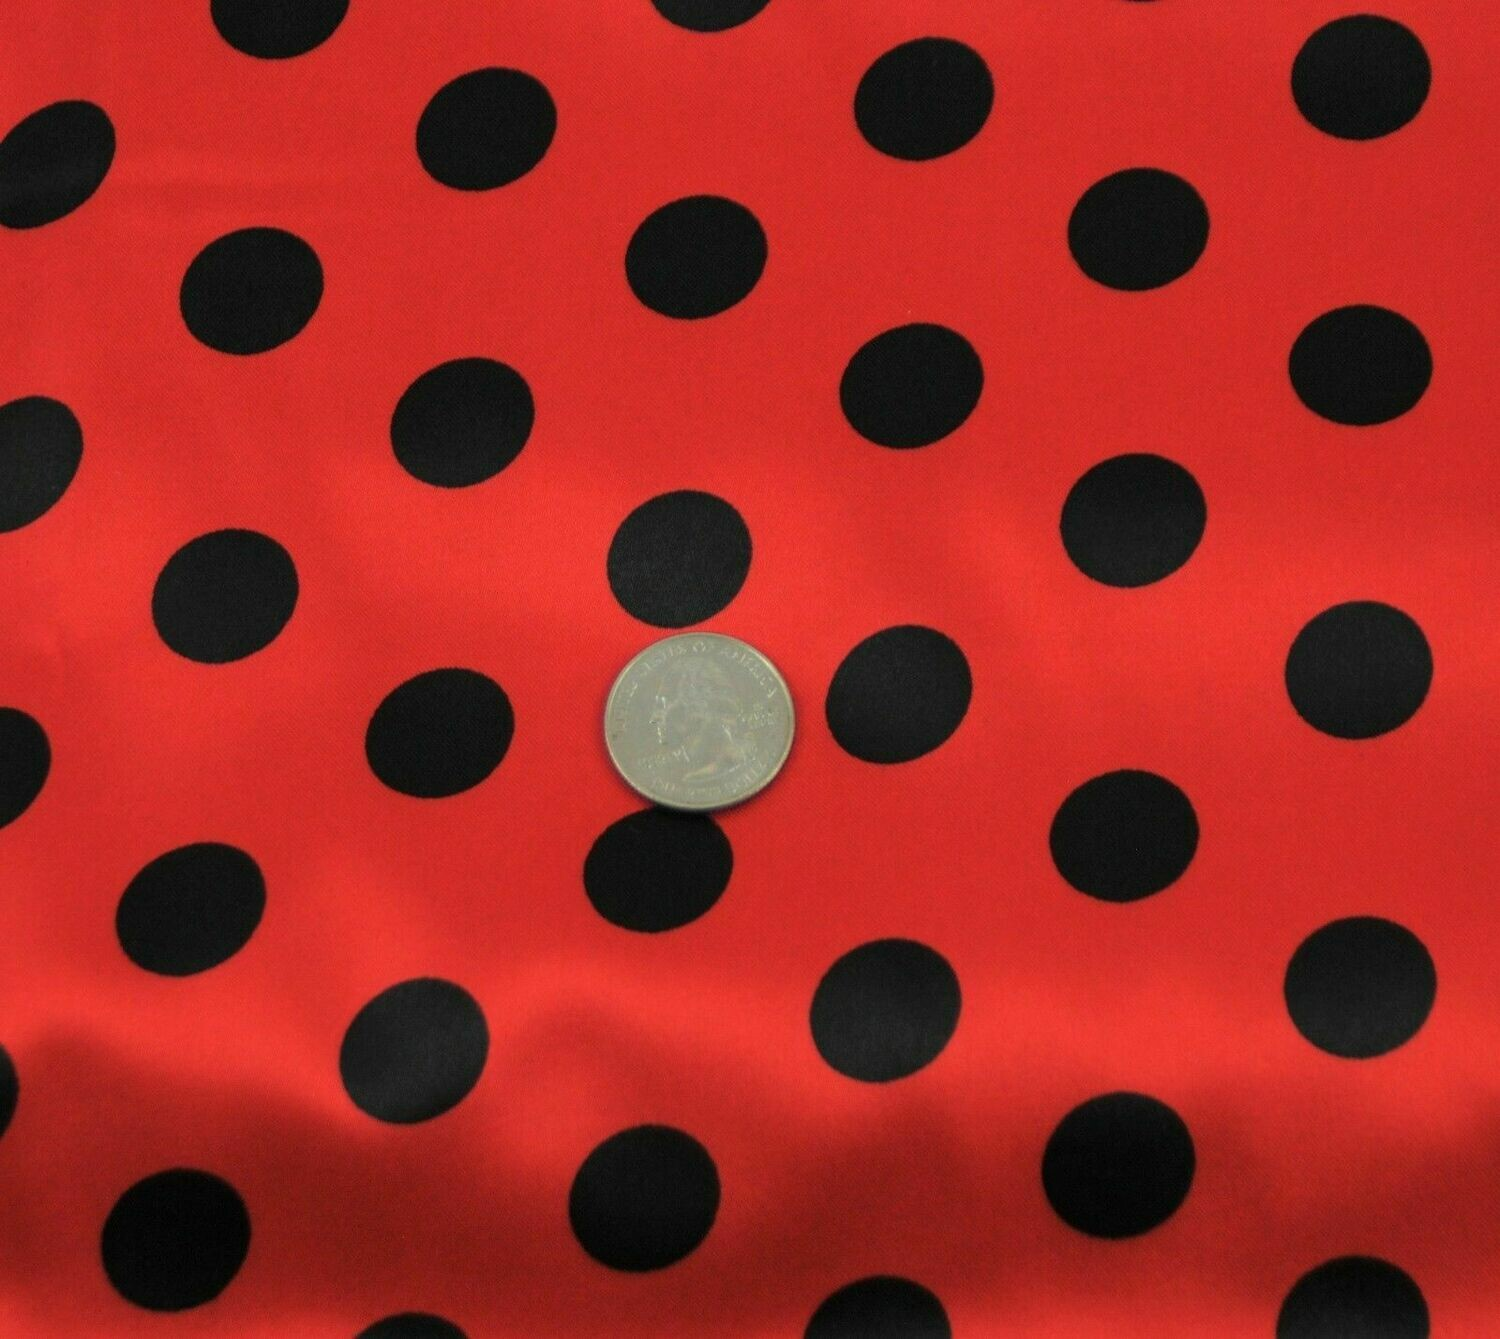 Polka Dot red w black SHINY SATIN 100%Polyester Pantie Lingerie Fabric 60